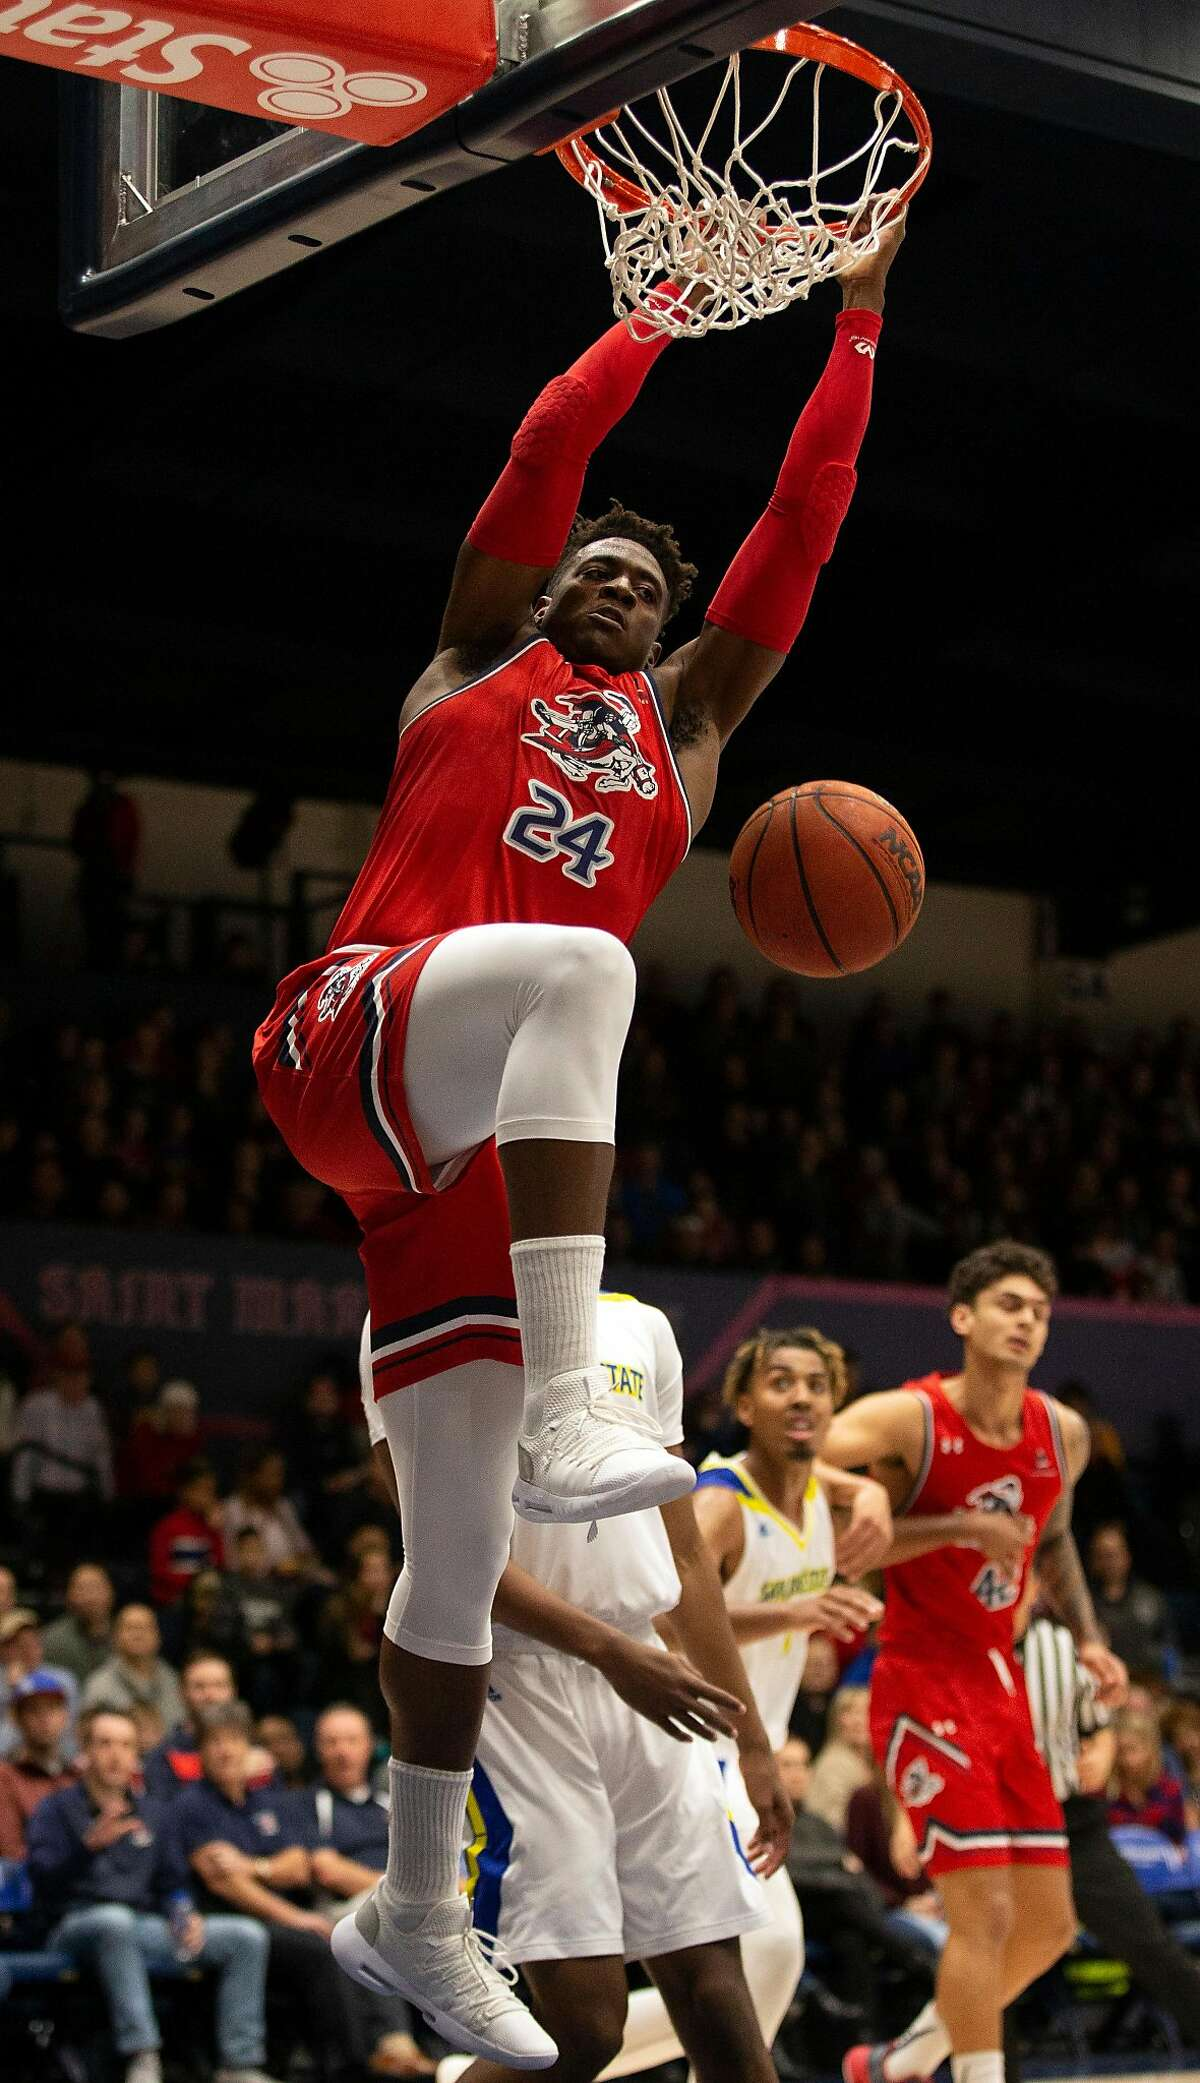 Saint Mary's Malik Fitts (24) dunks over San Jose State's Seneca Knight (23) during the first half of an NCAA men's basketball game, Saturday, Dec. 29, 2018 in Moraga, Calif.